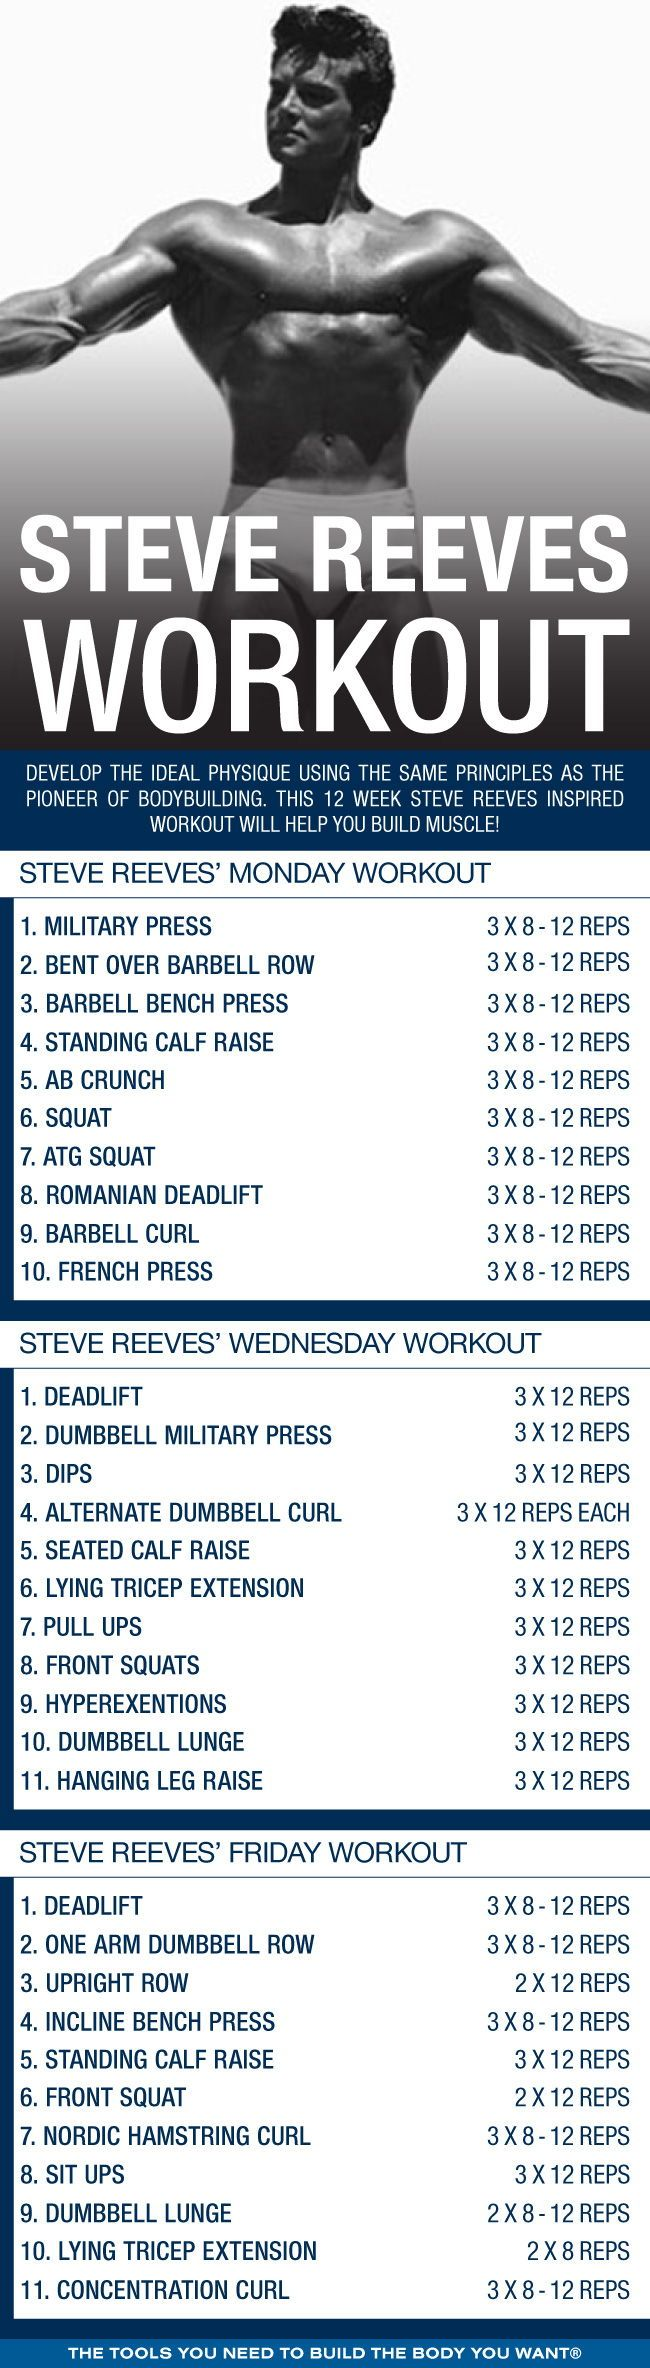 (Click through to download PDF!) Develop the ideal physique using the same principles as the pioneer of bodybuilding. This 12 week Steve Reeves inspired workout will help you build muscle! #workout #gym #fitness #bodybuilding